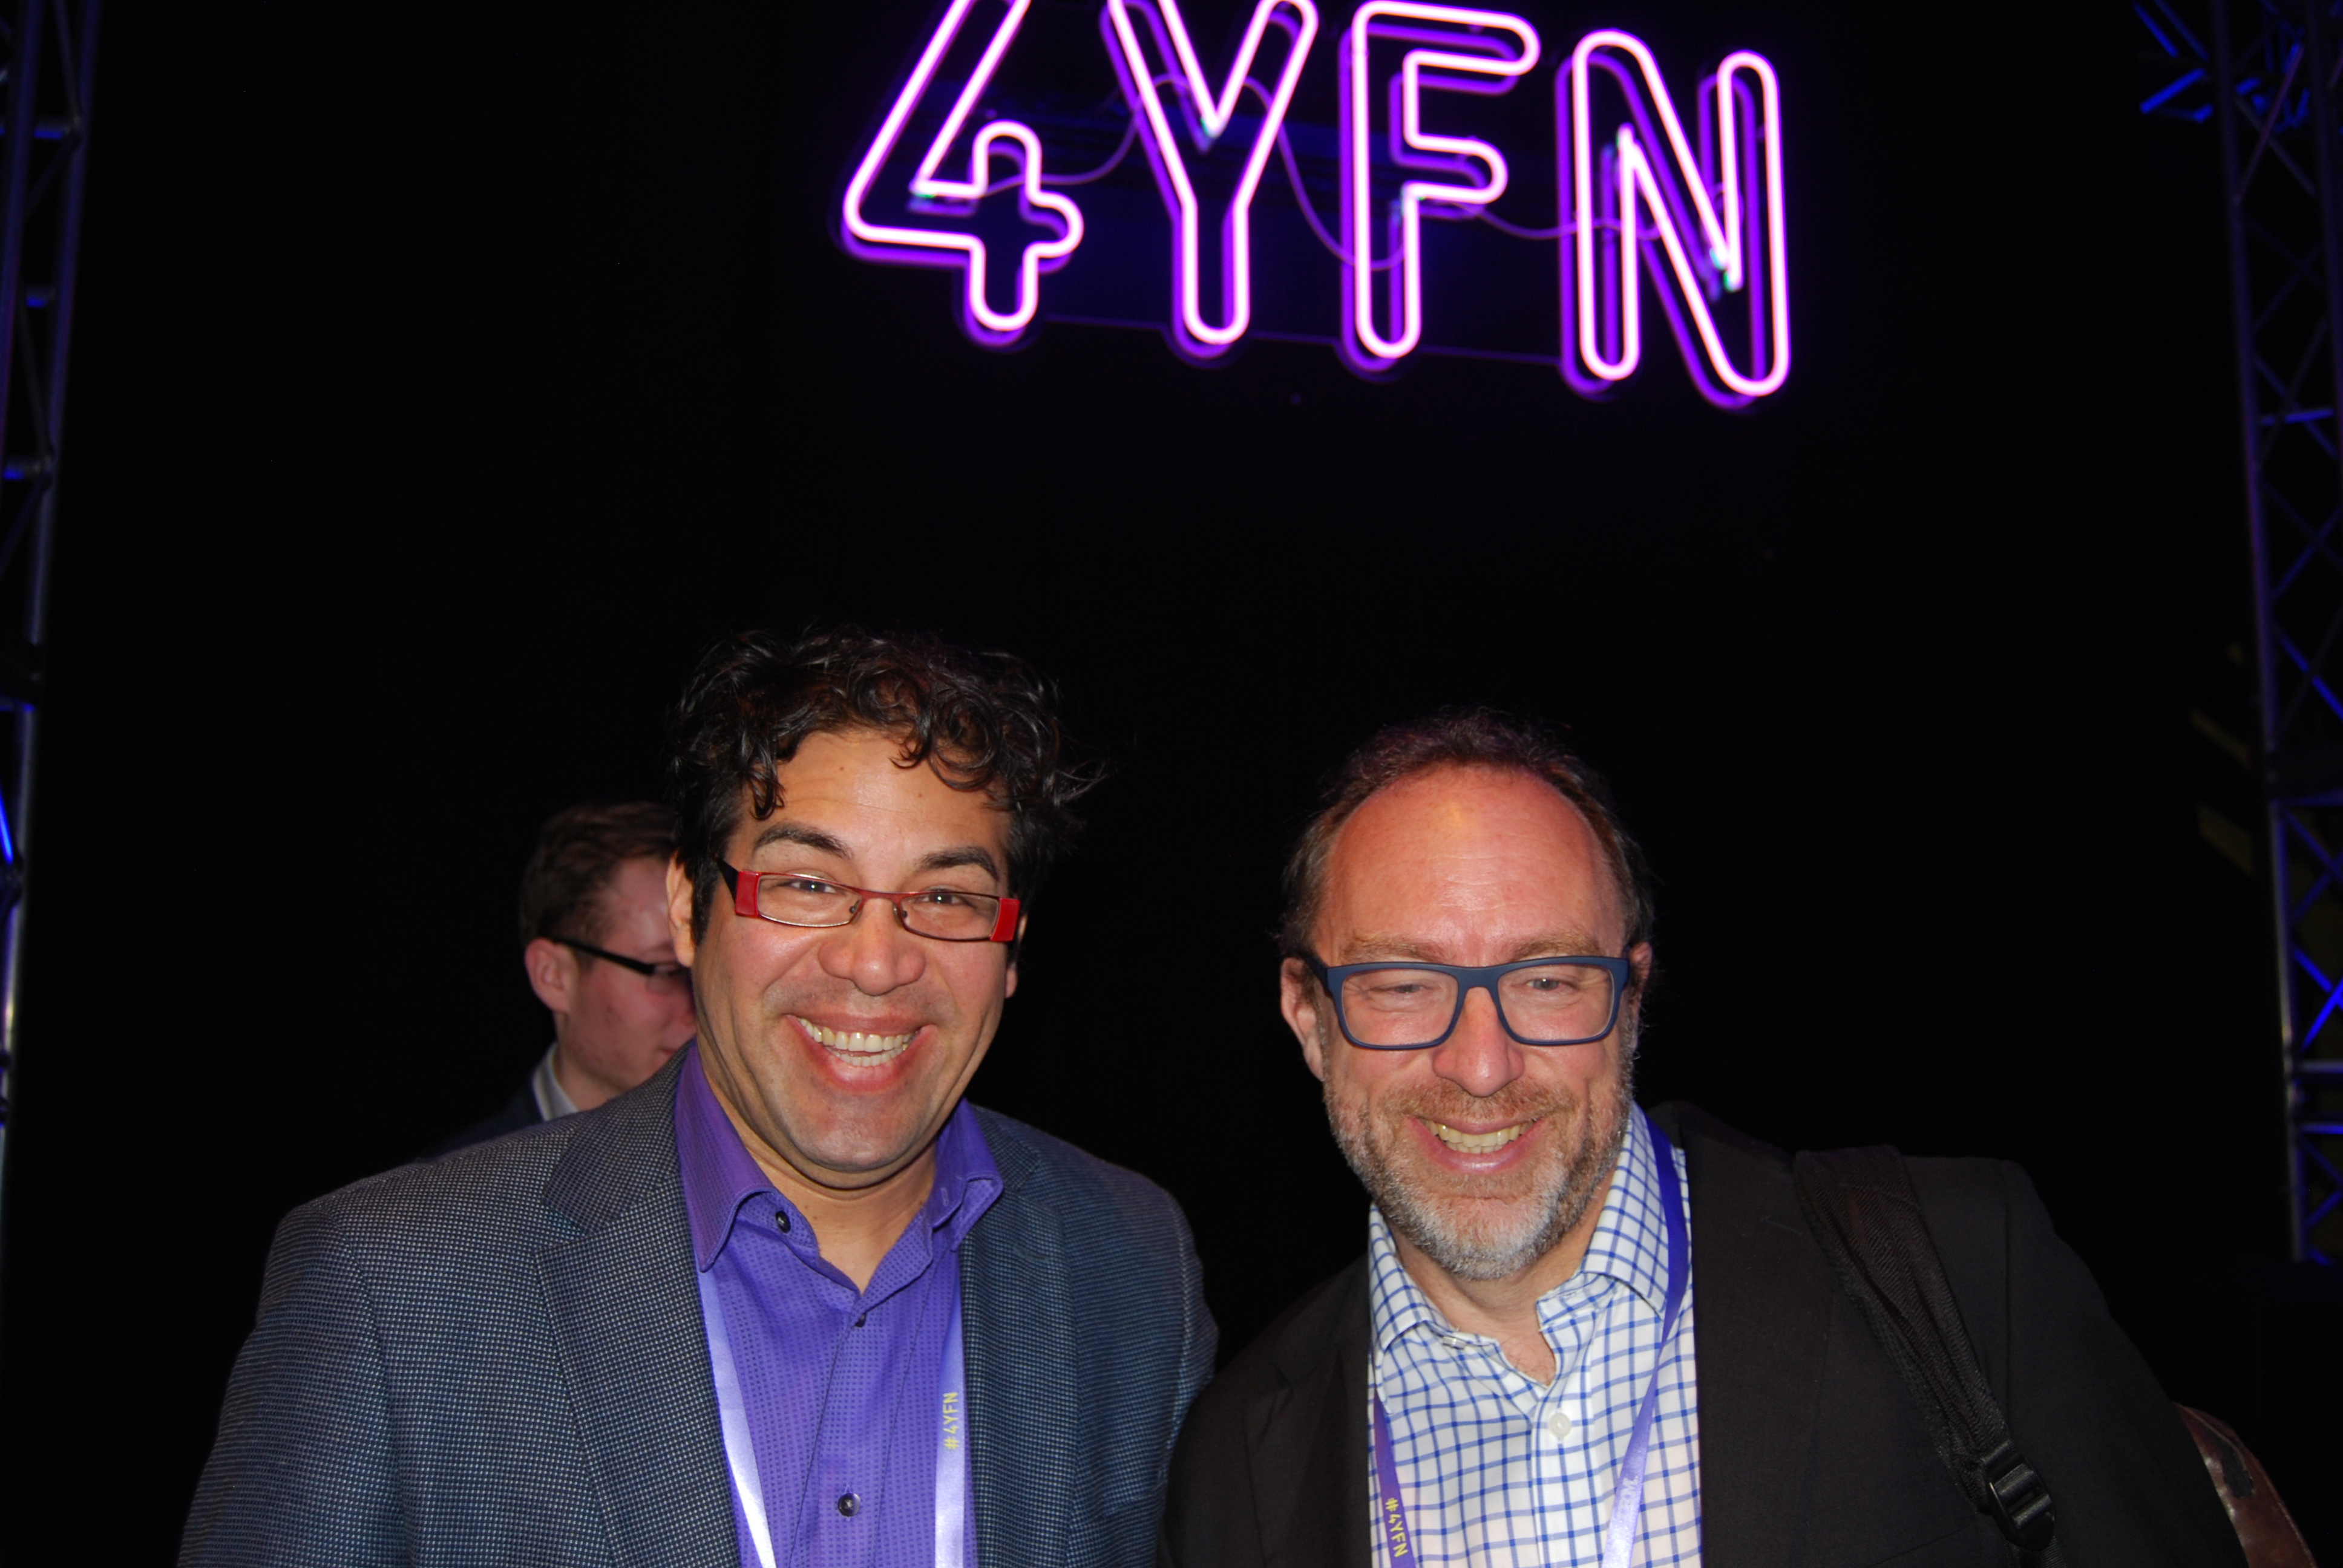 Con Jimmy Wales, fundador de Wikipedia